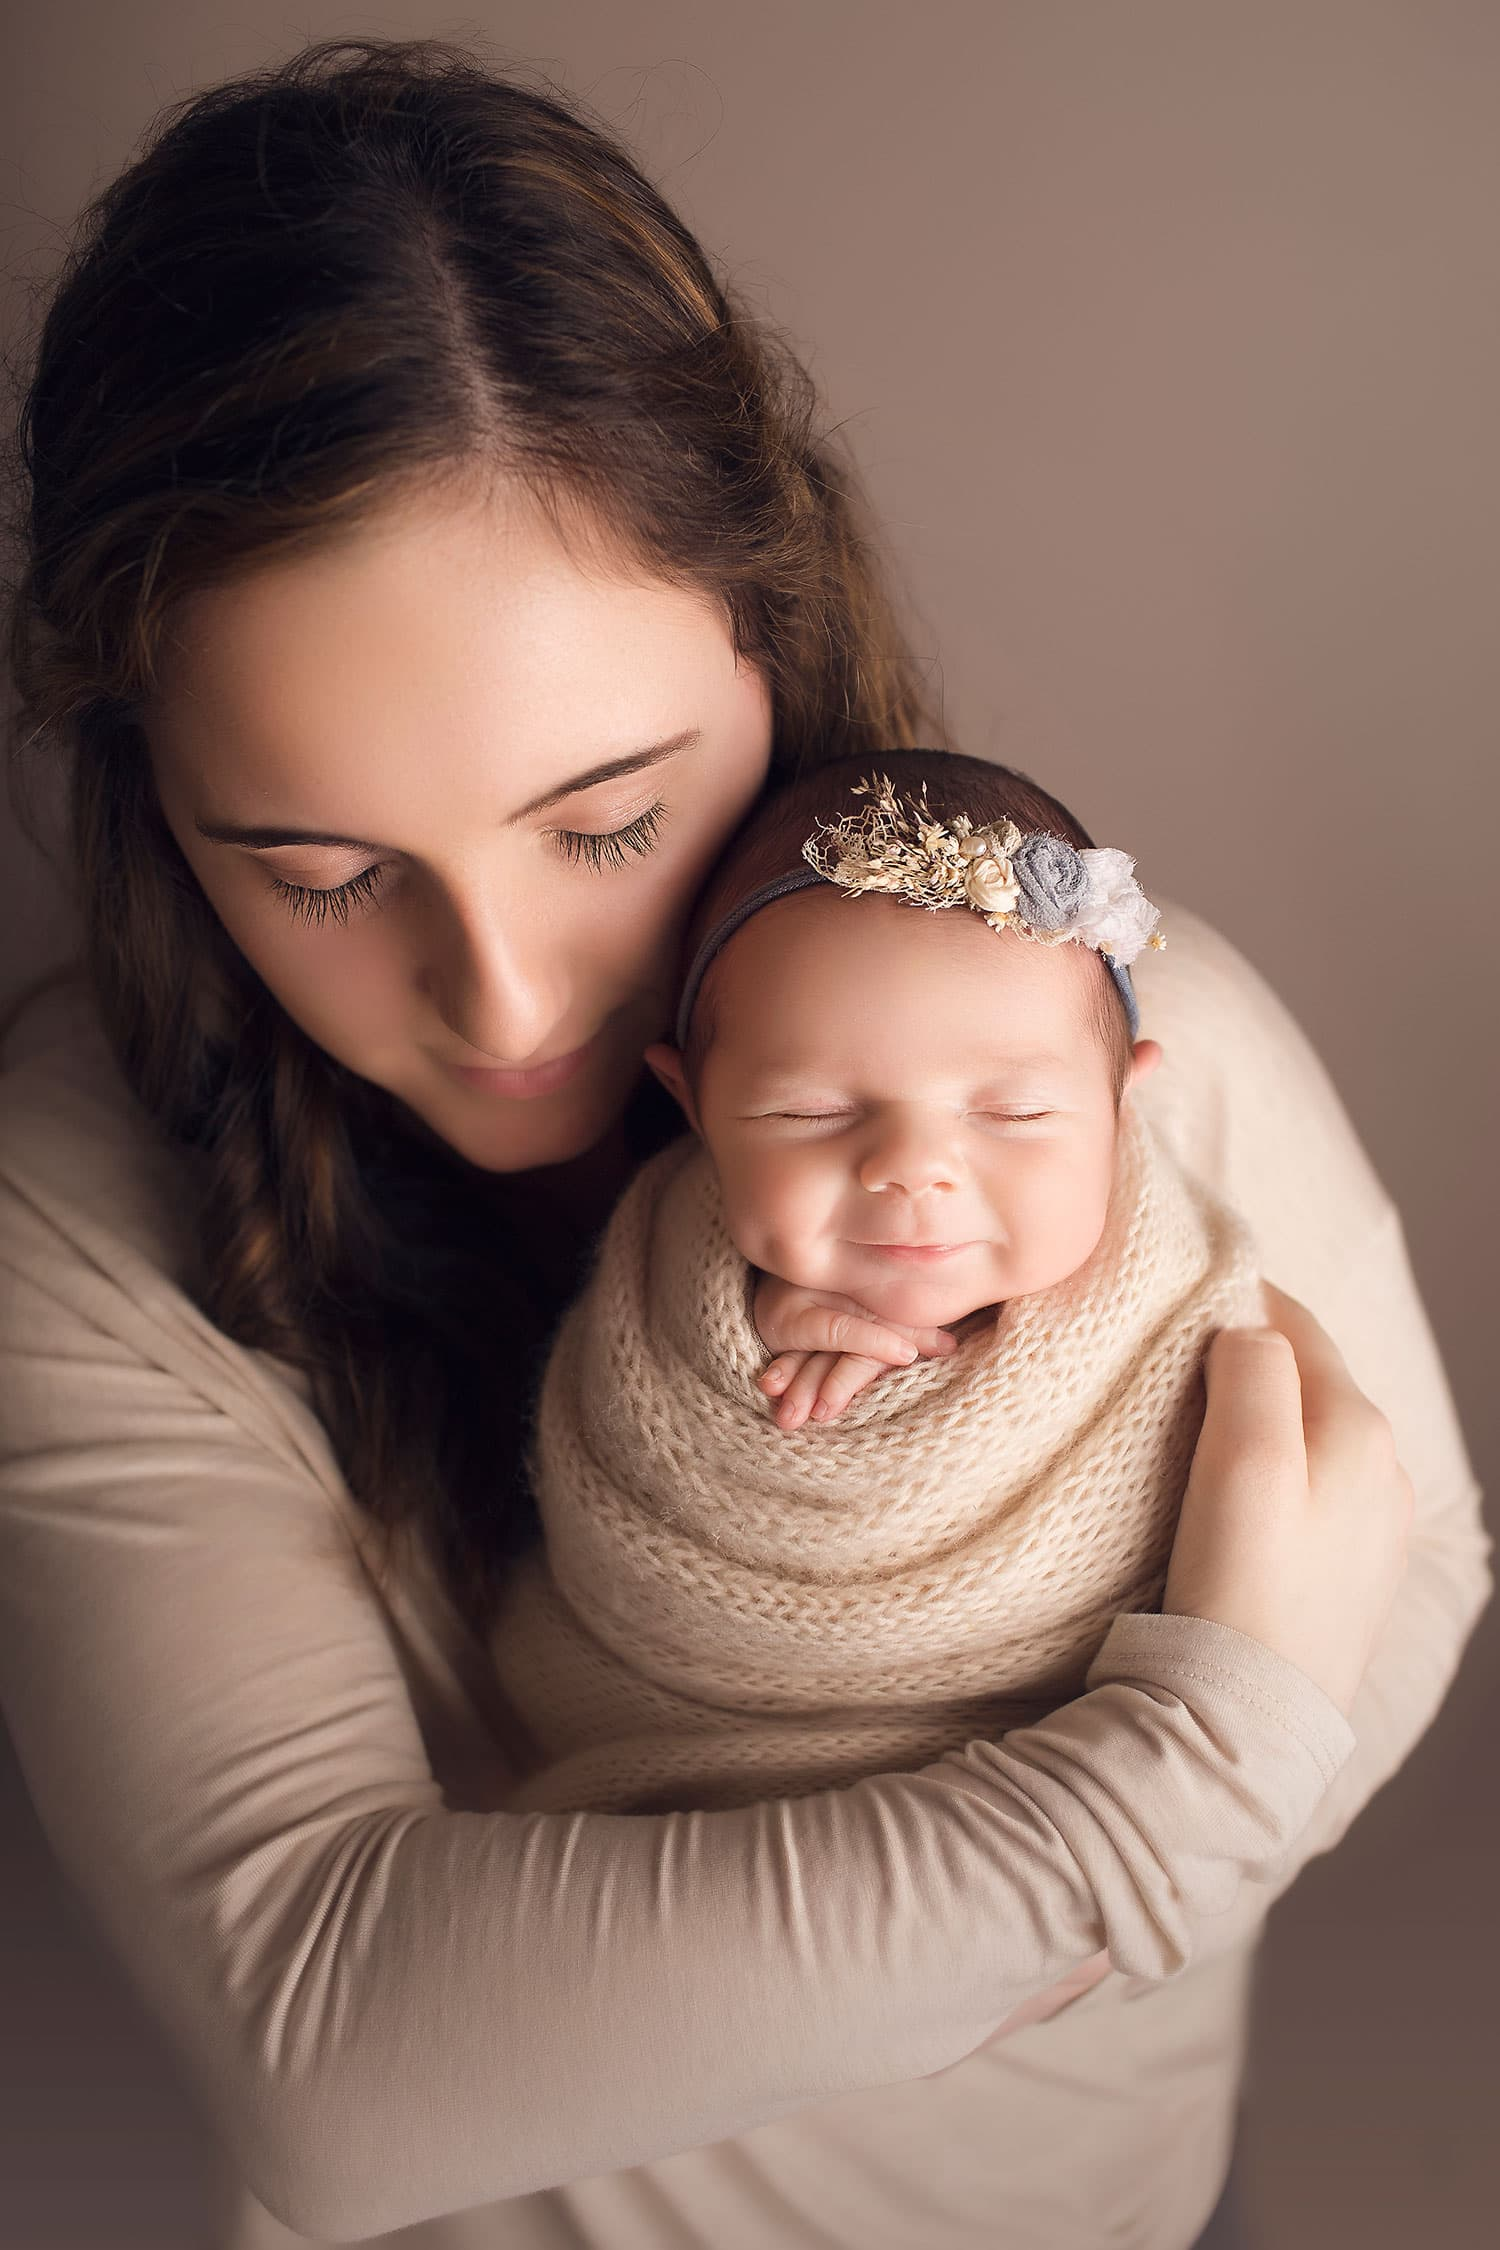 Best sibling photo with newborn by Annie Whitaker Photography